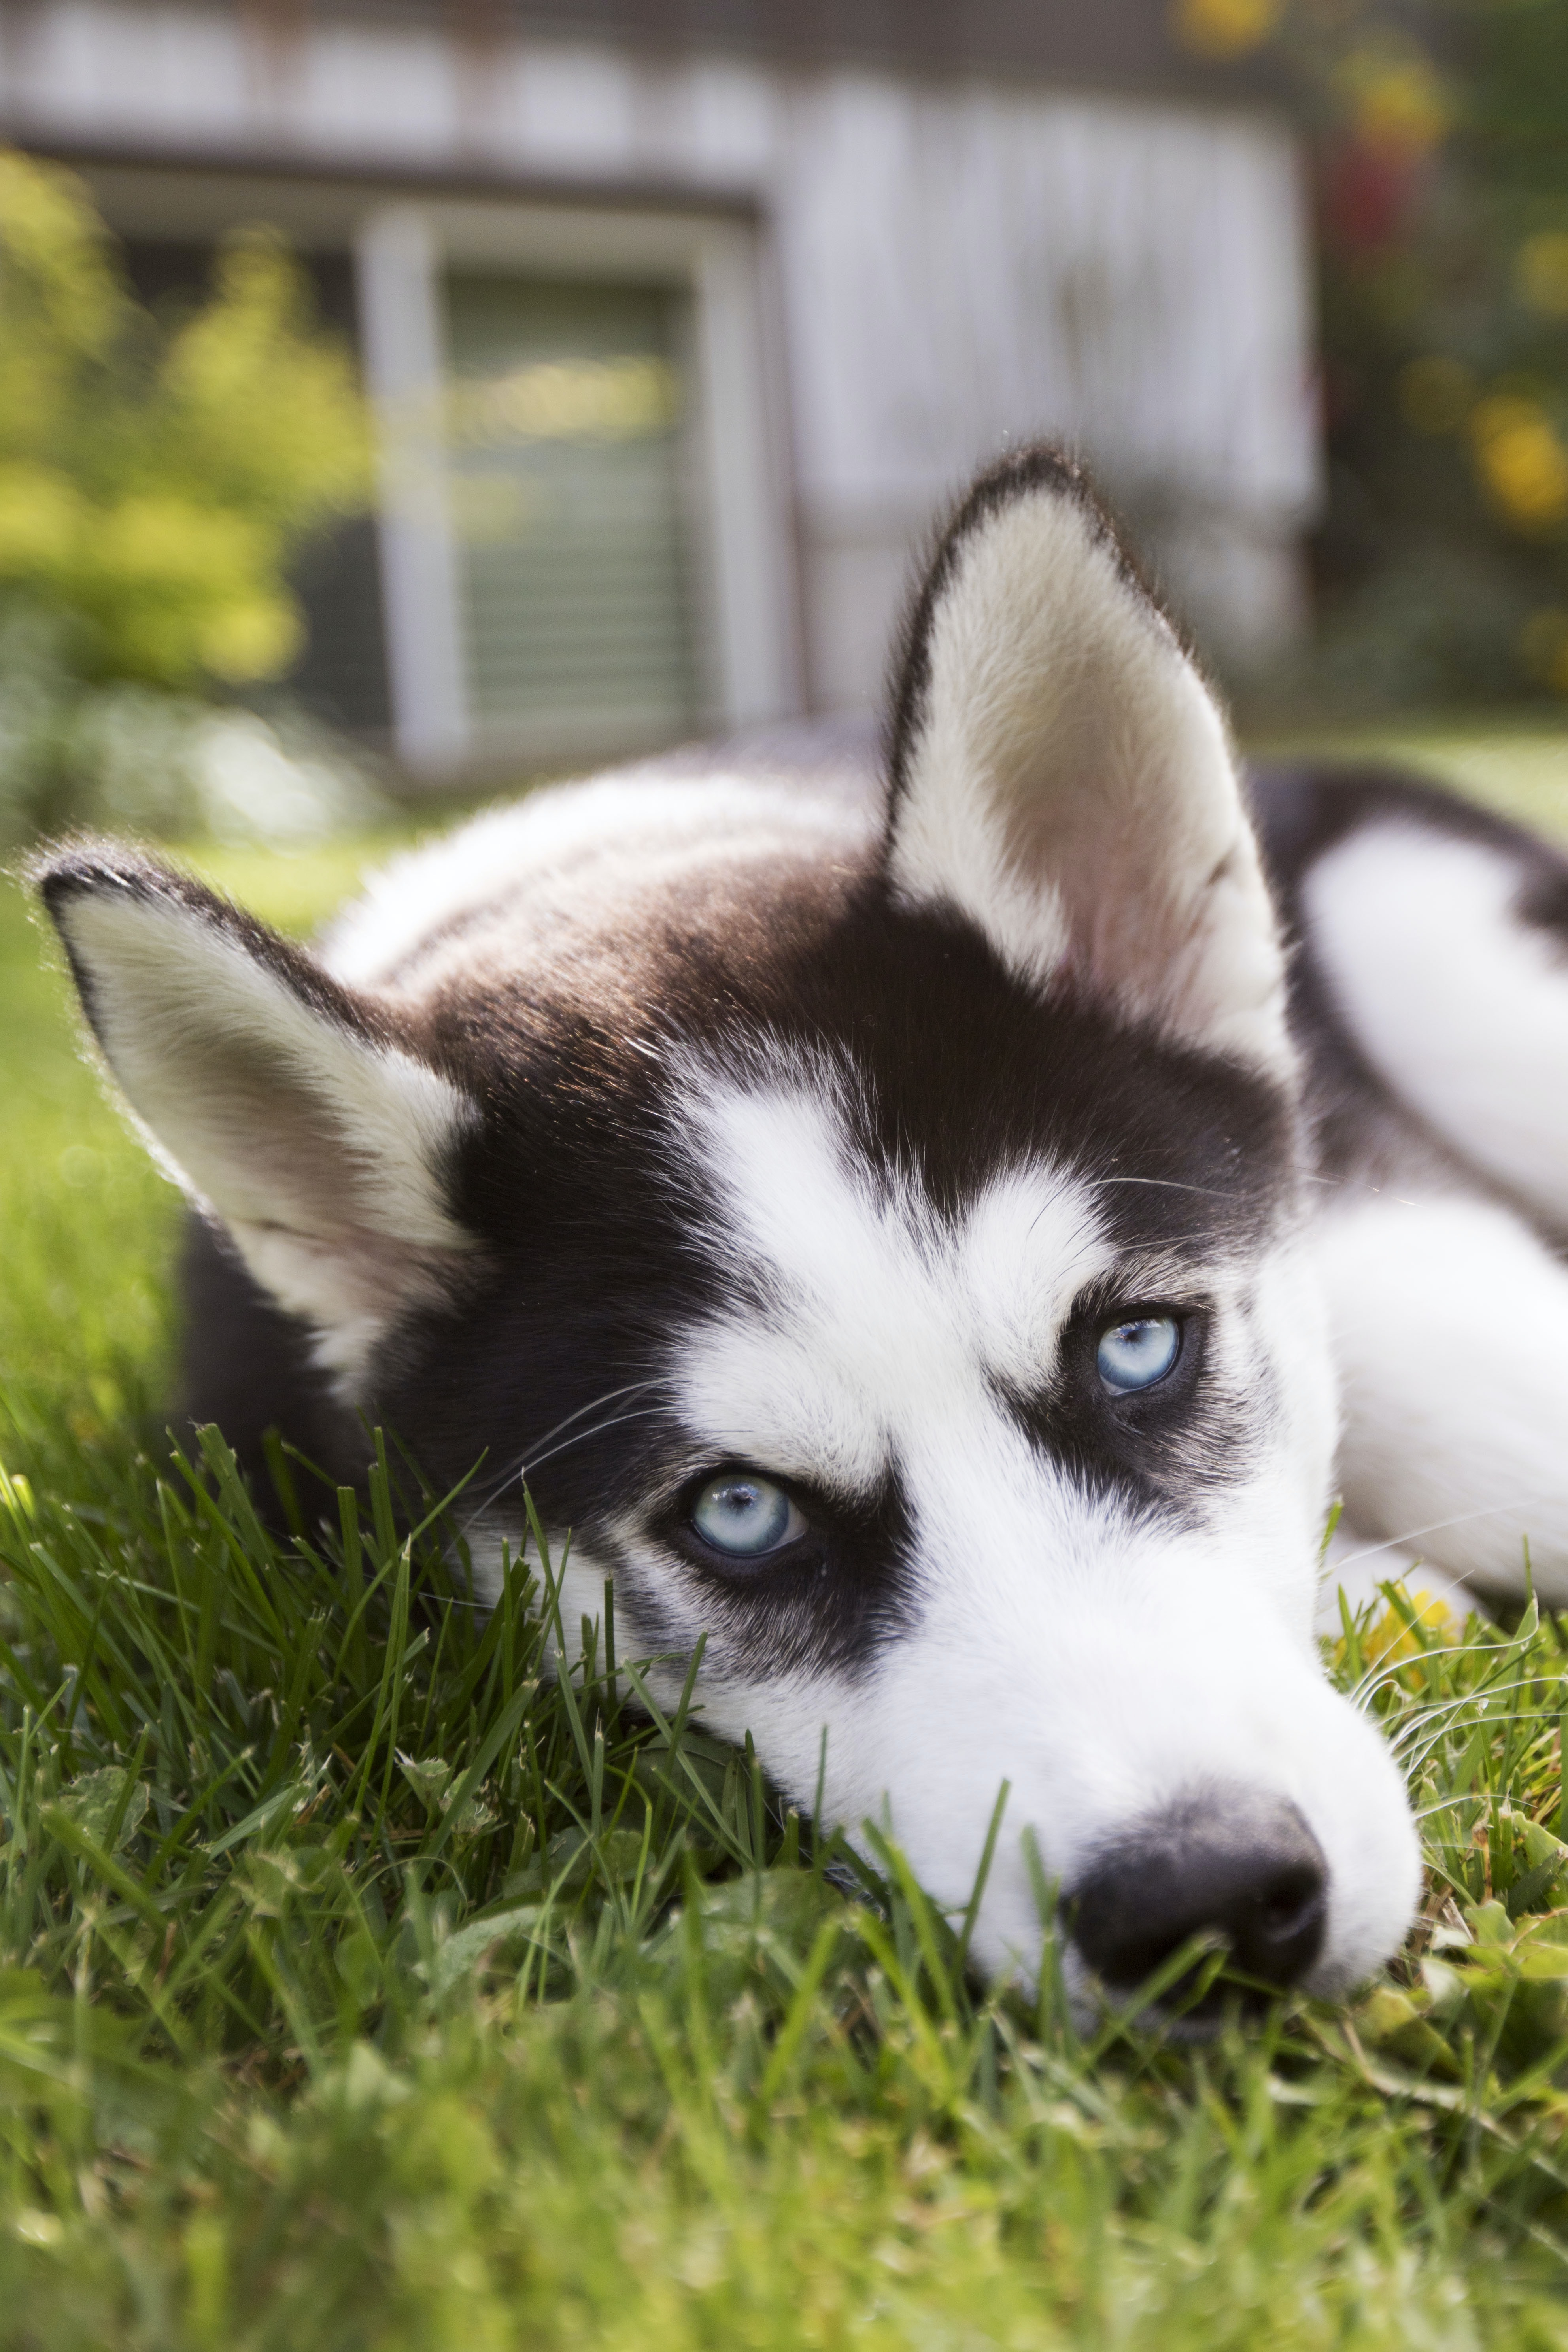 White And Black Siberian Husky Puppy Photo Free Grass Image On Unsplash